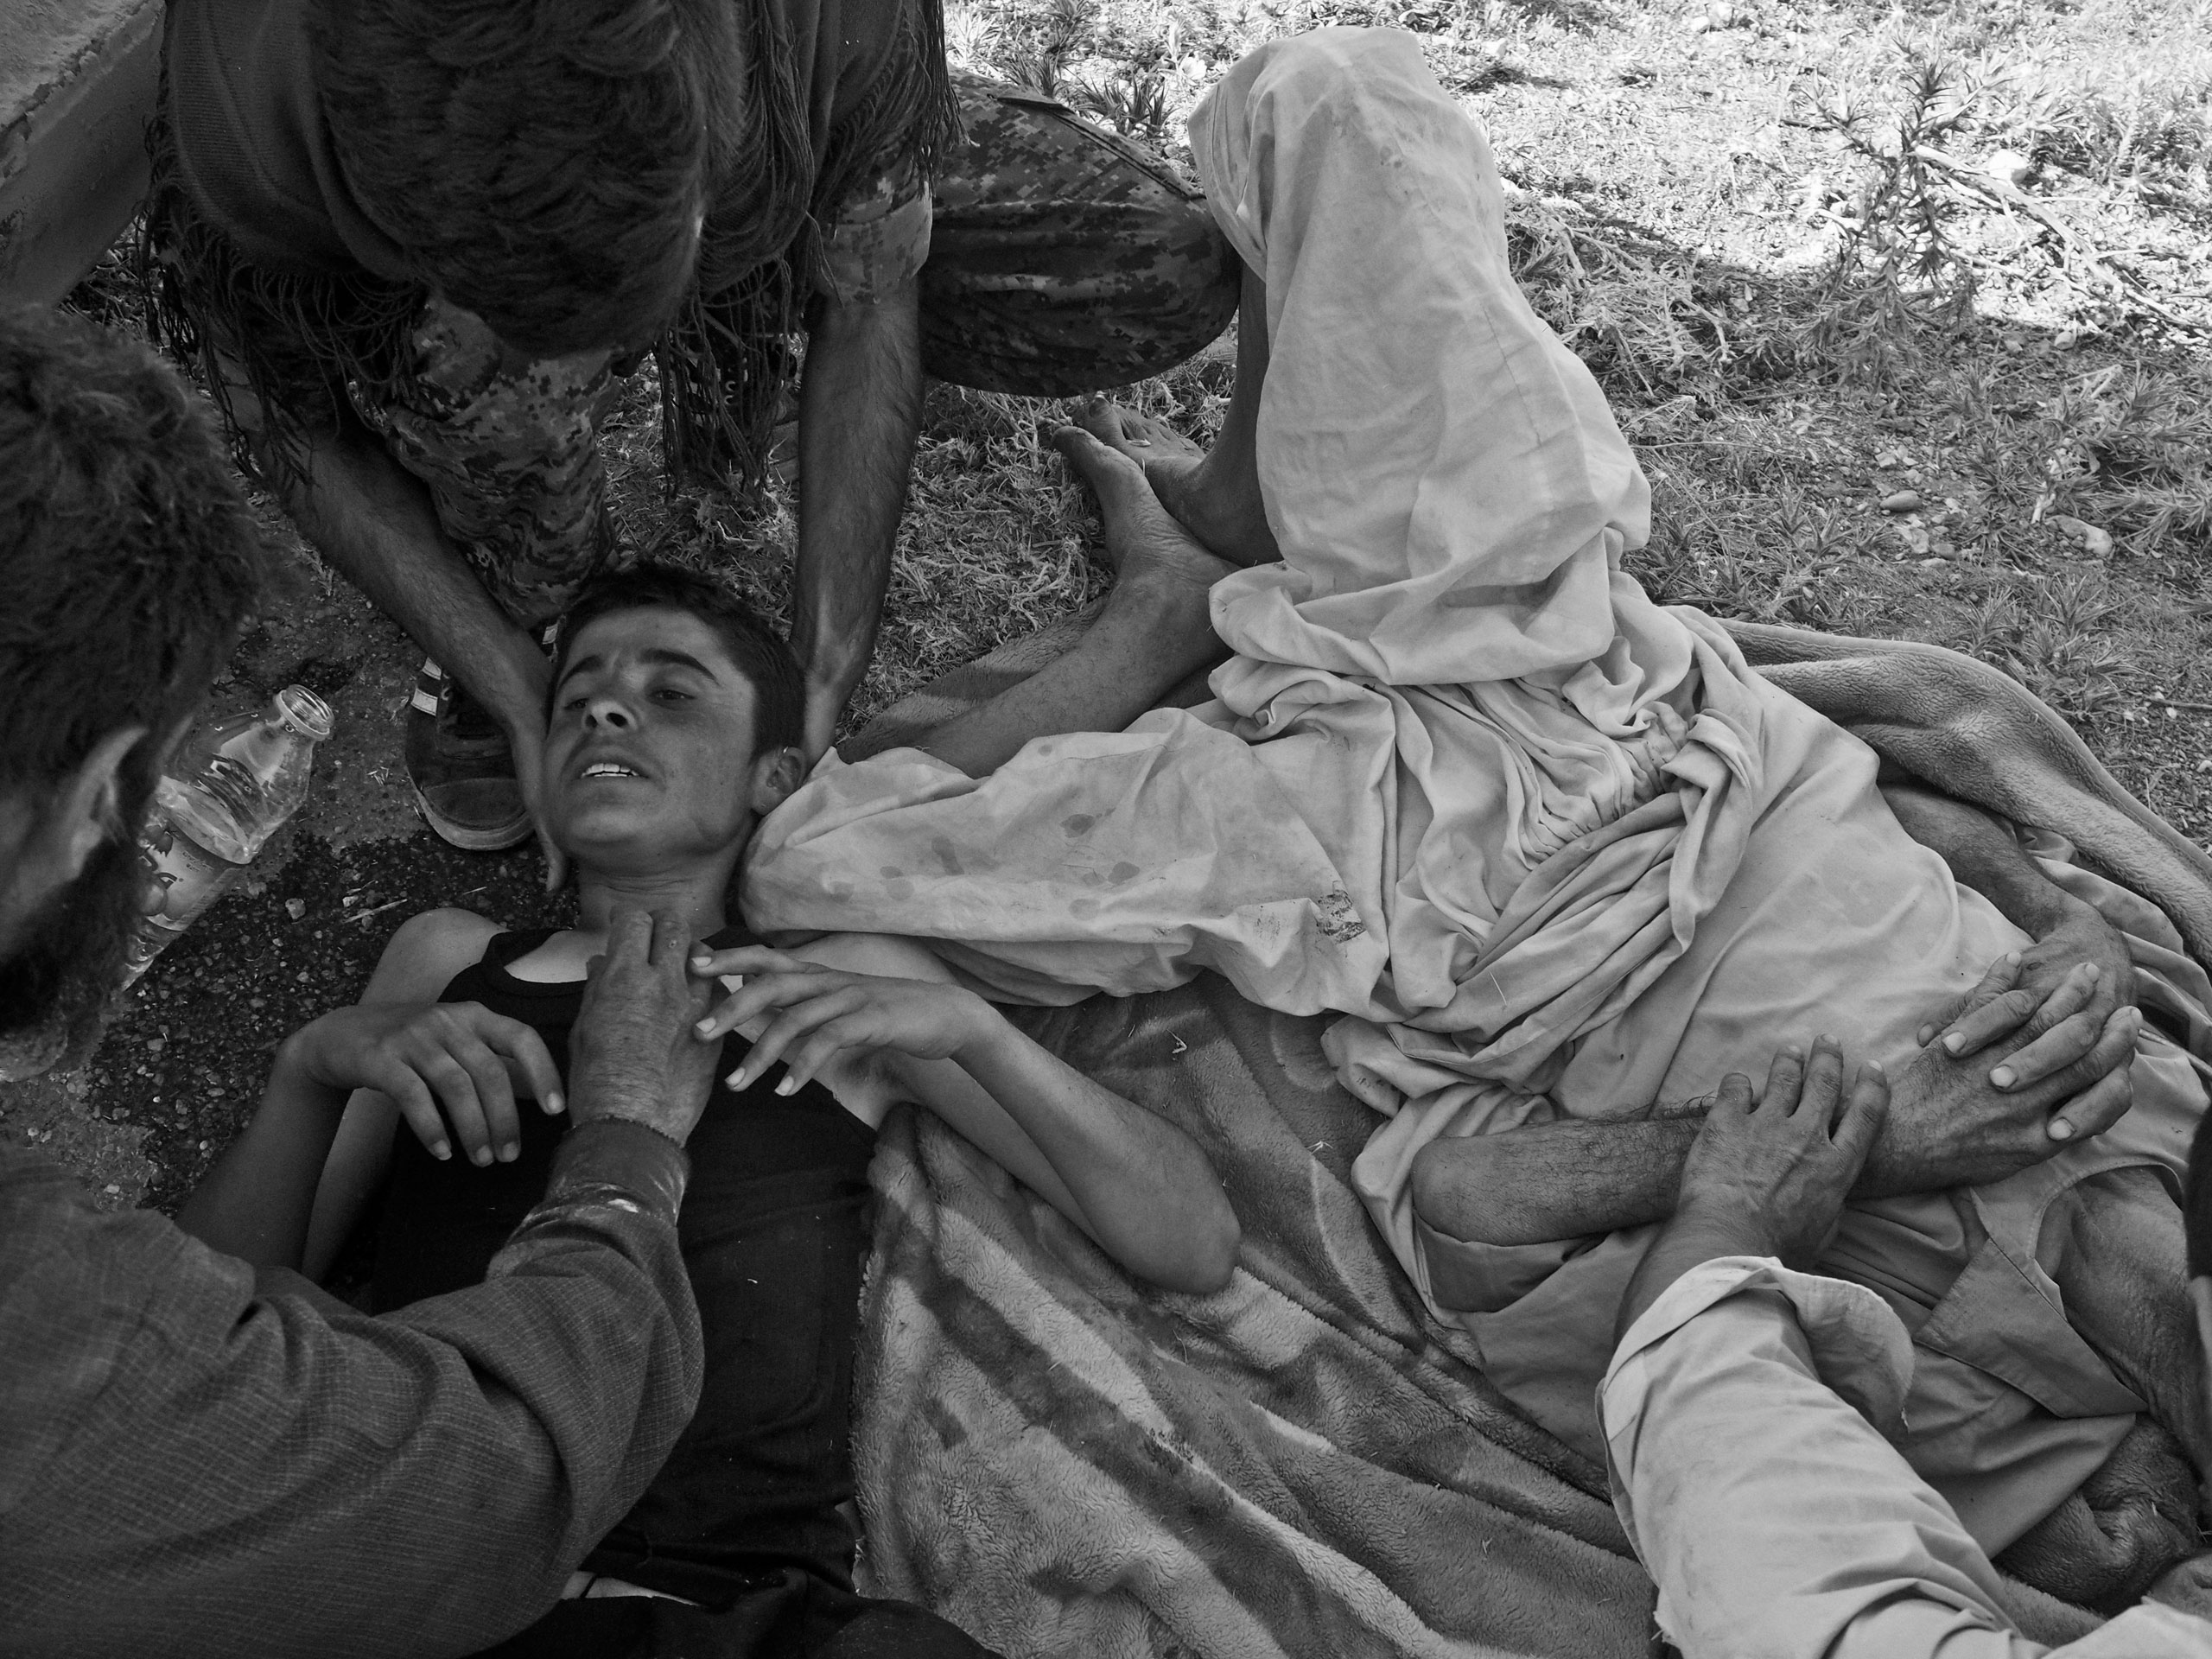 Wounded Yezidi refugees receive care after a helicopter crash. Sinjar Mountains, Iraq. Aug. 12, 2014.